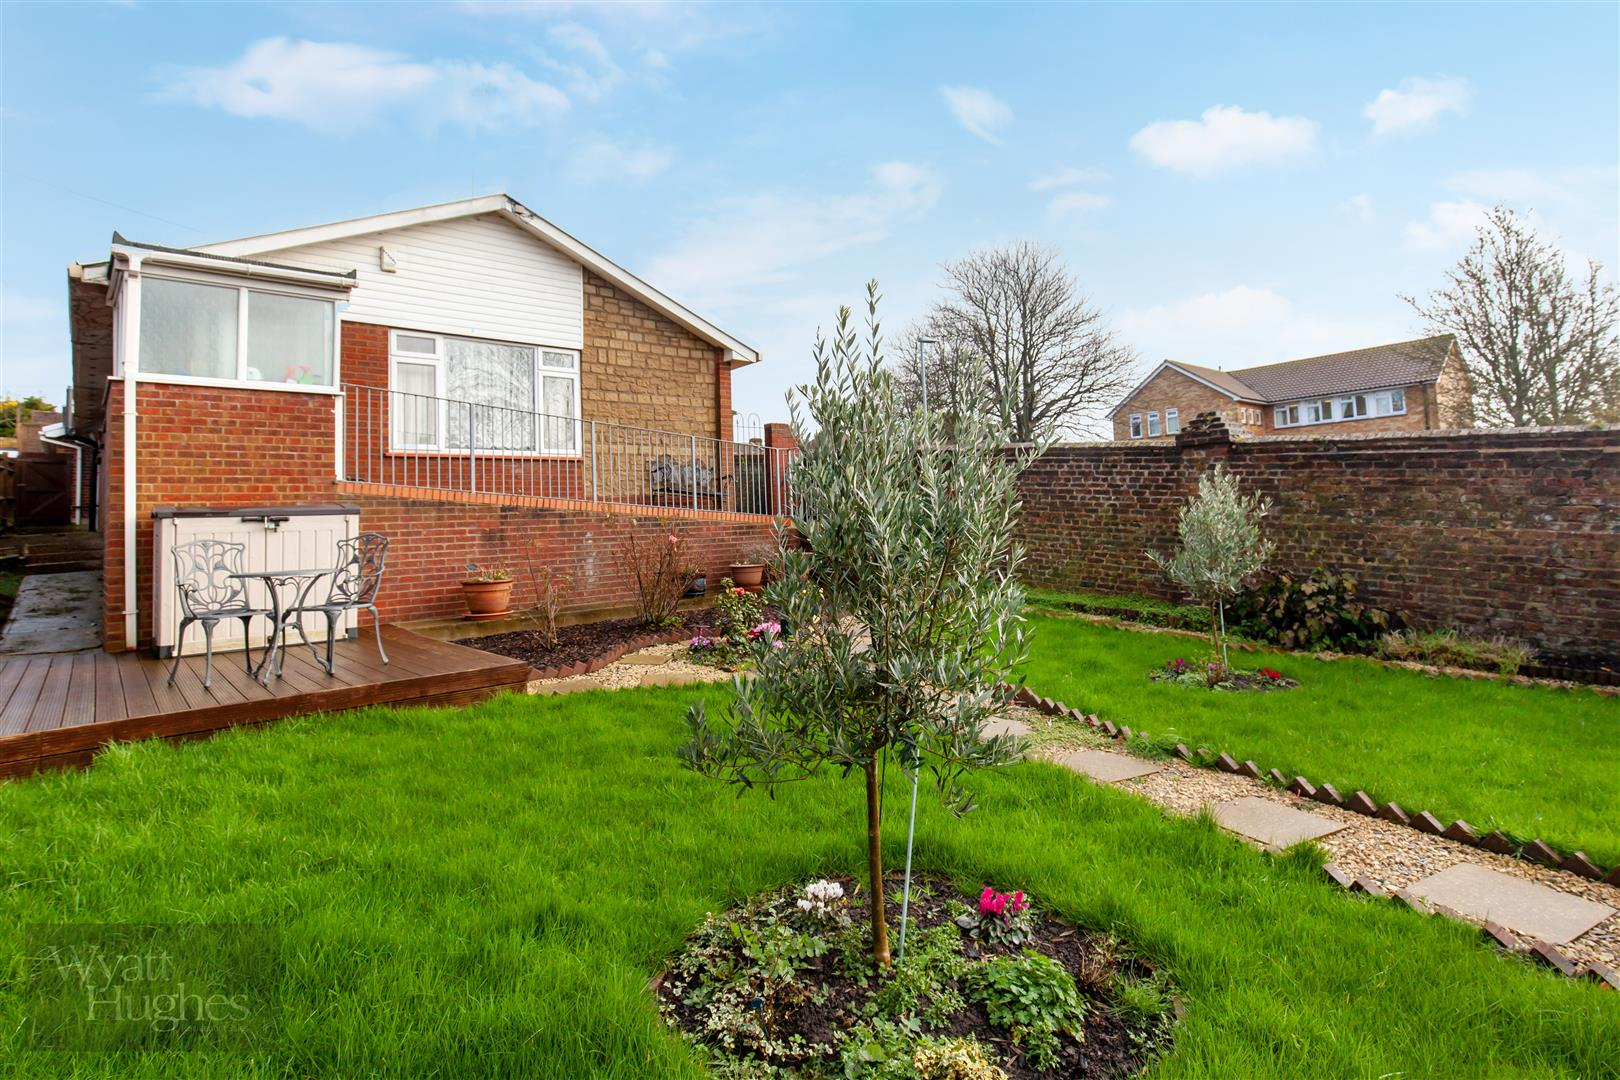 4 bed detached-bungalow for sale in Lower Glen Road, St. Leonards-On-Sea  - Property Image 1